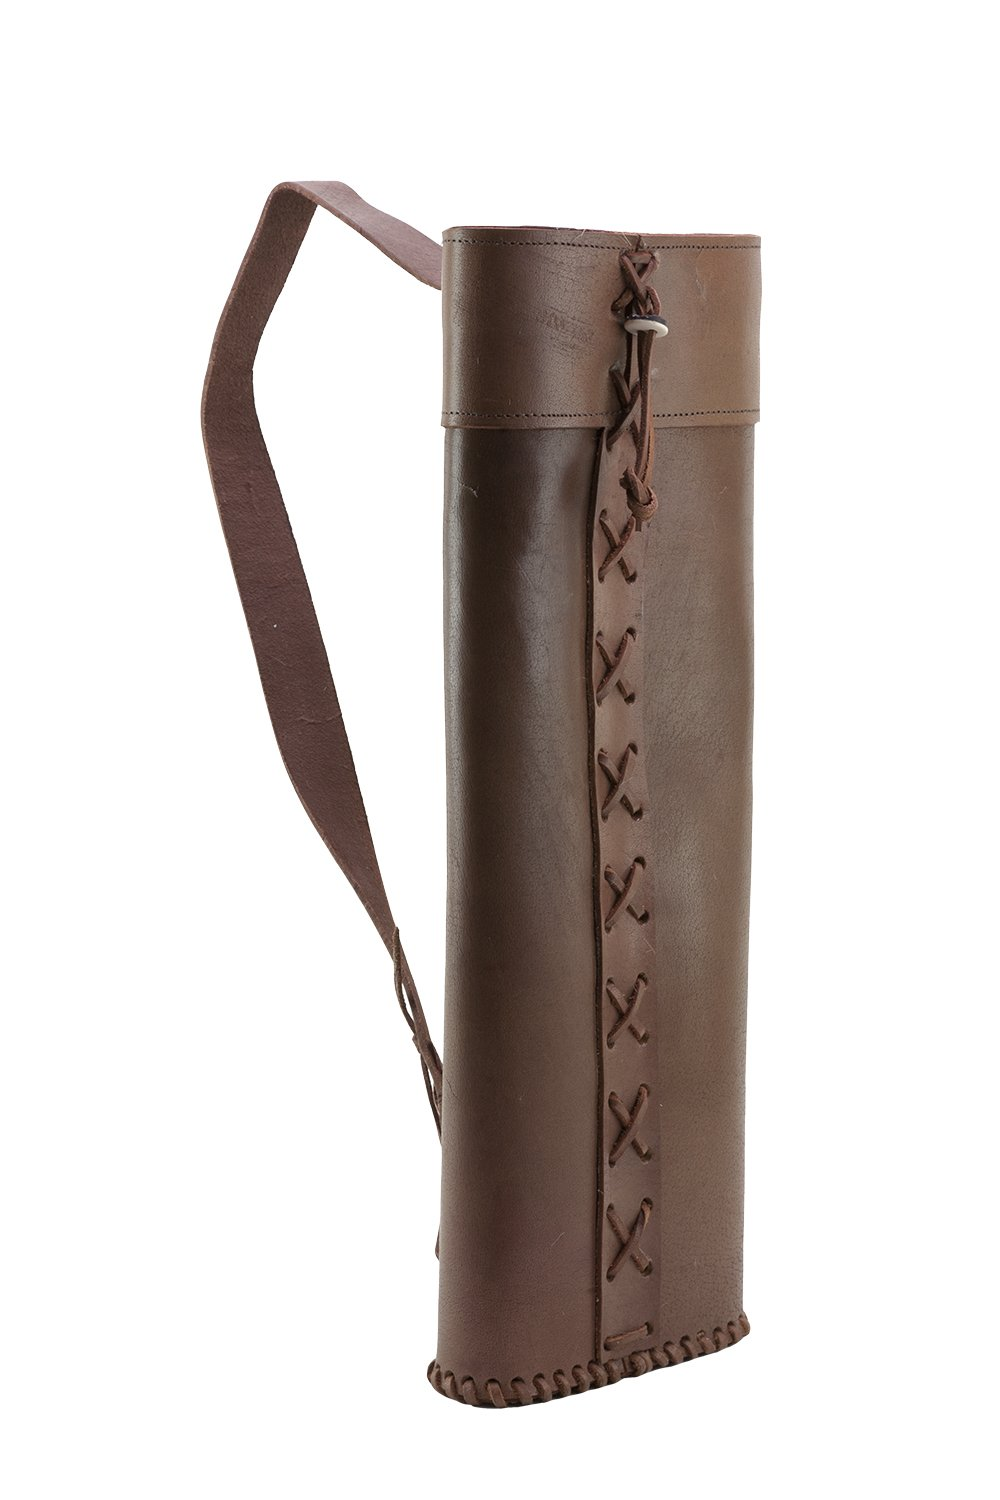 Rose City Archery XLG Full Leather Quiver, Large